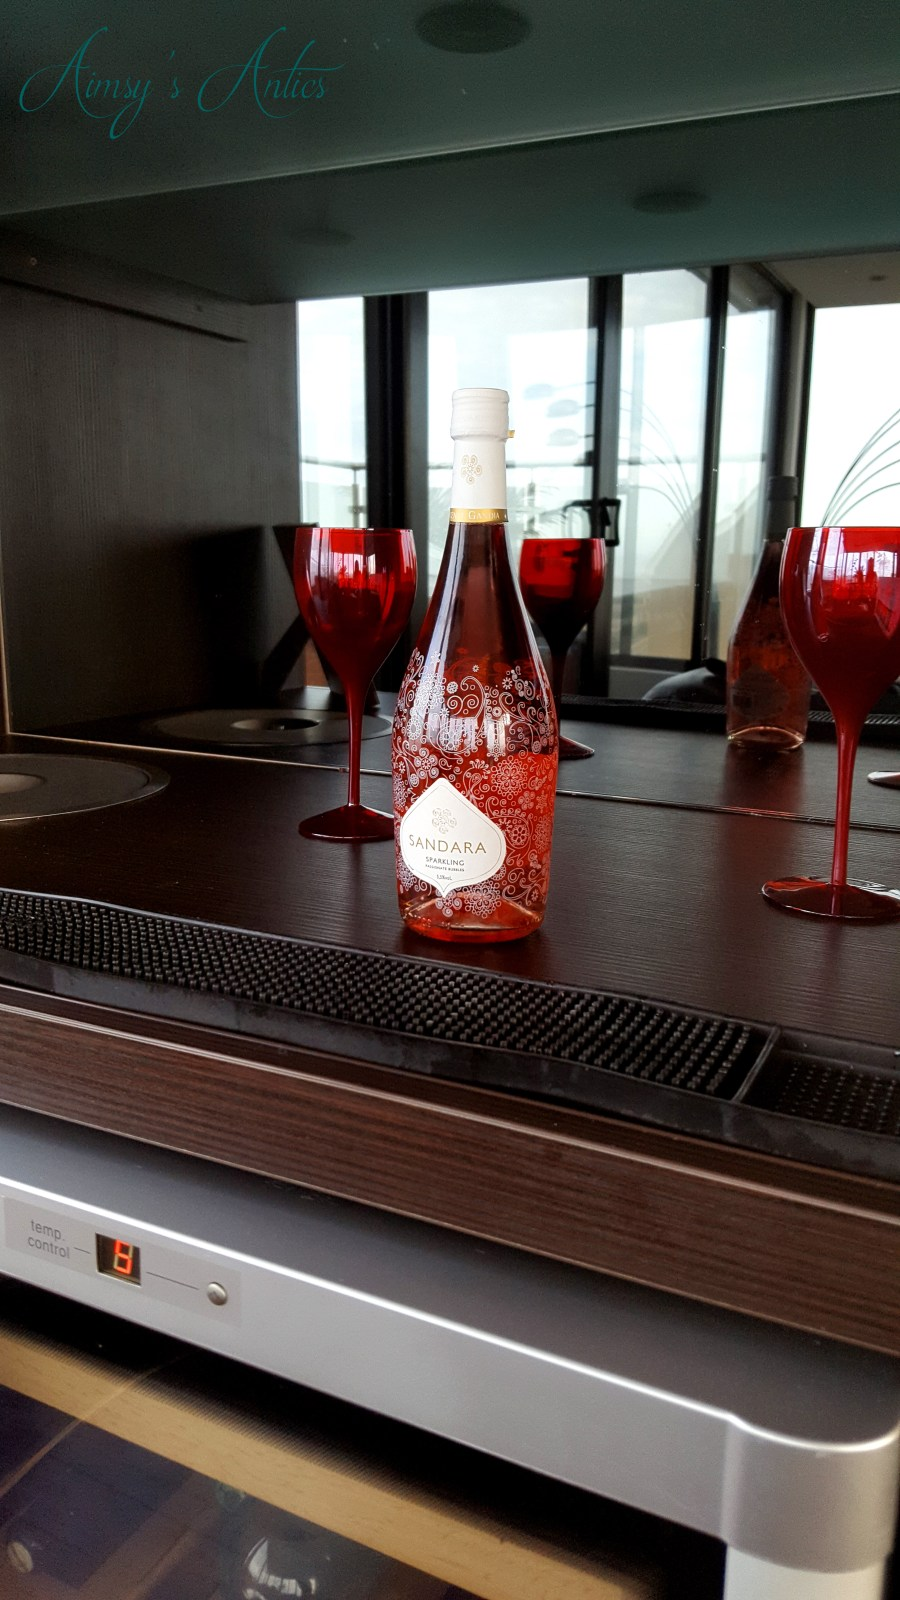 Image of the bar area in the High-end Beachside house with red wine glasses and a bottle of pink fizz